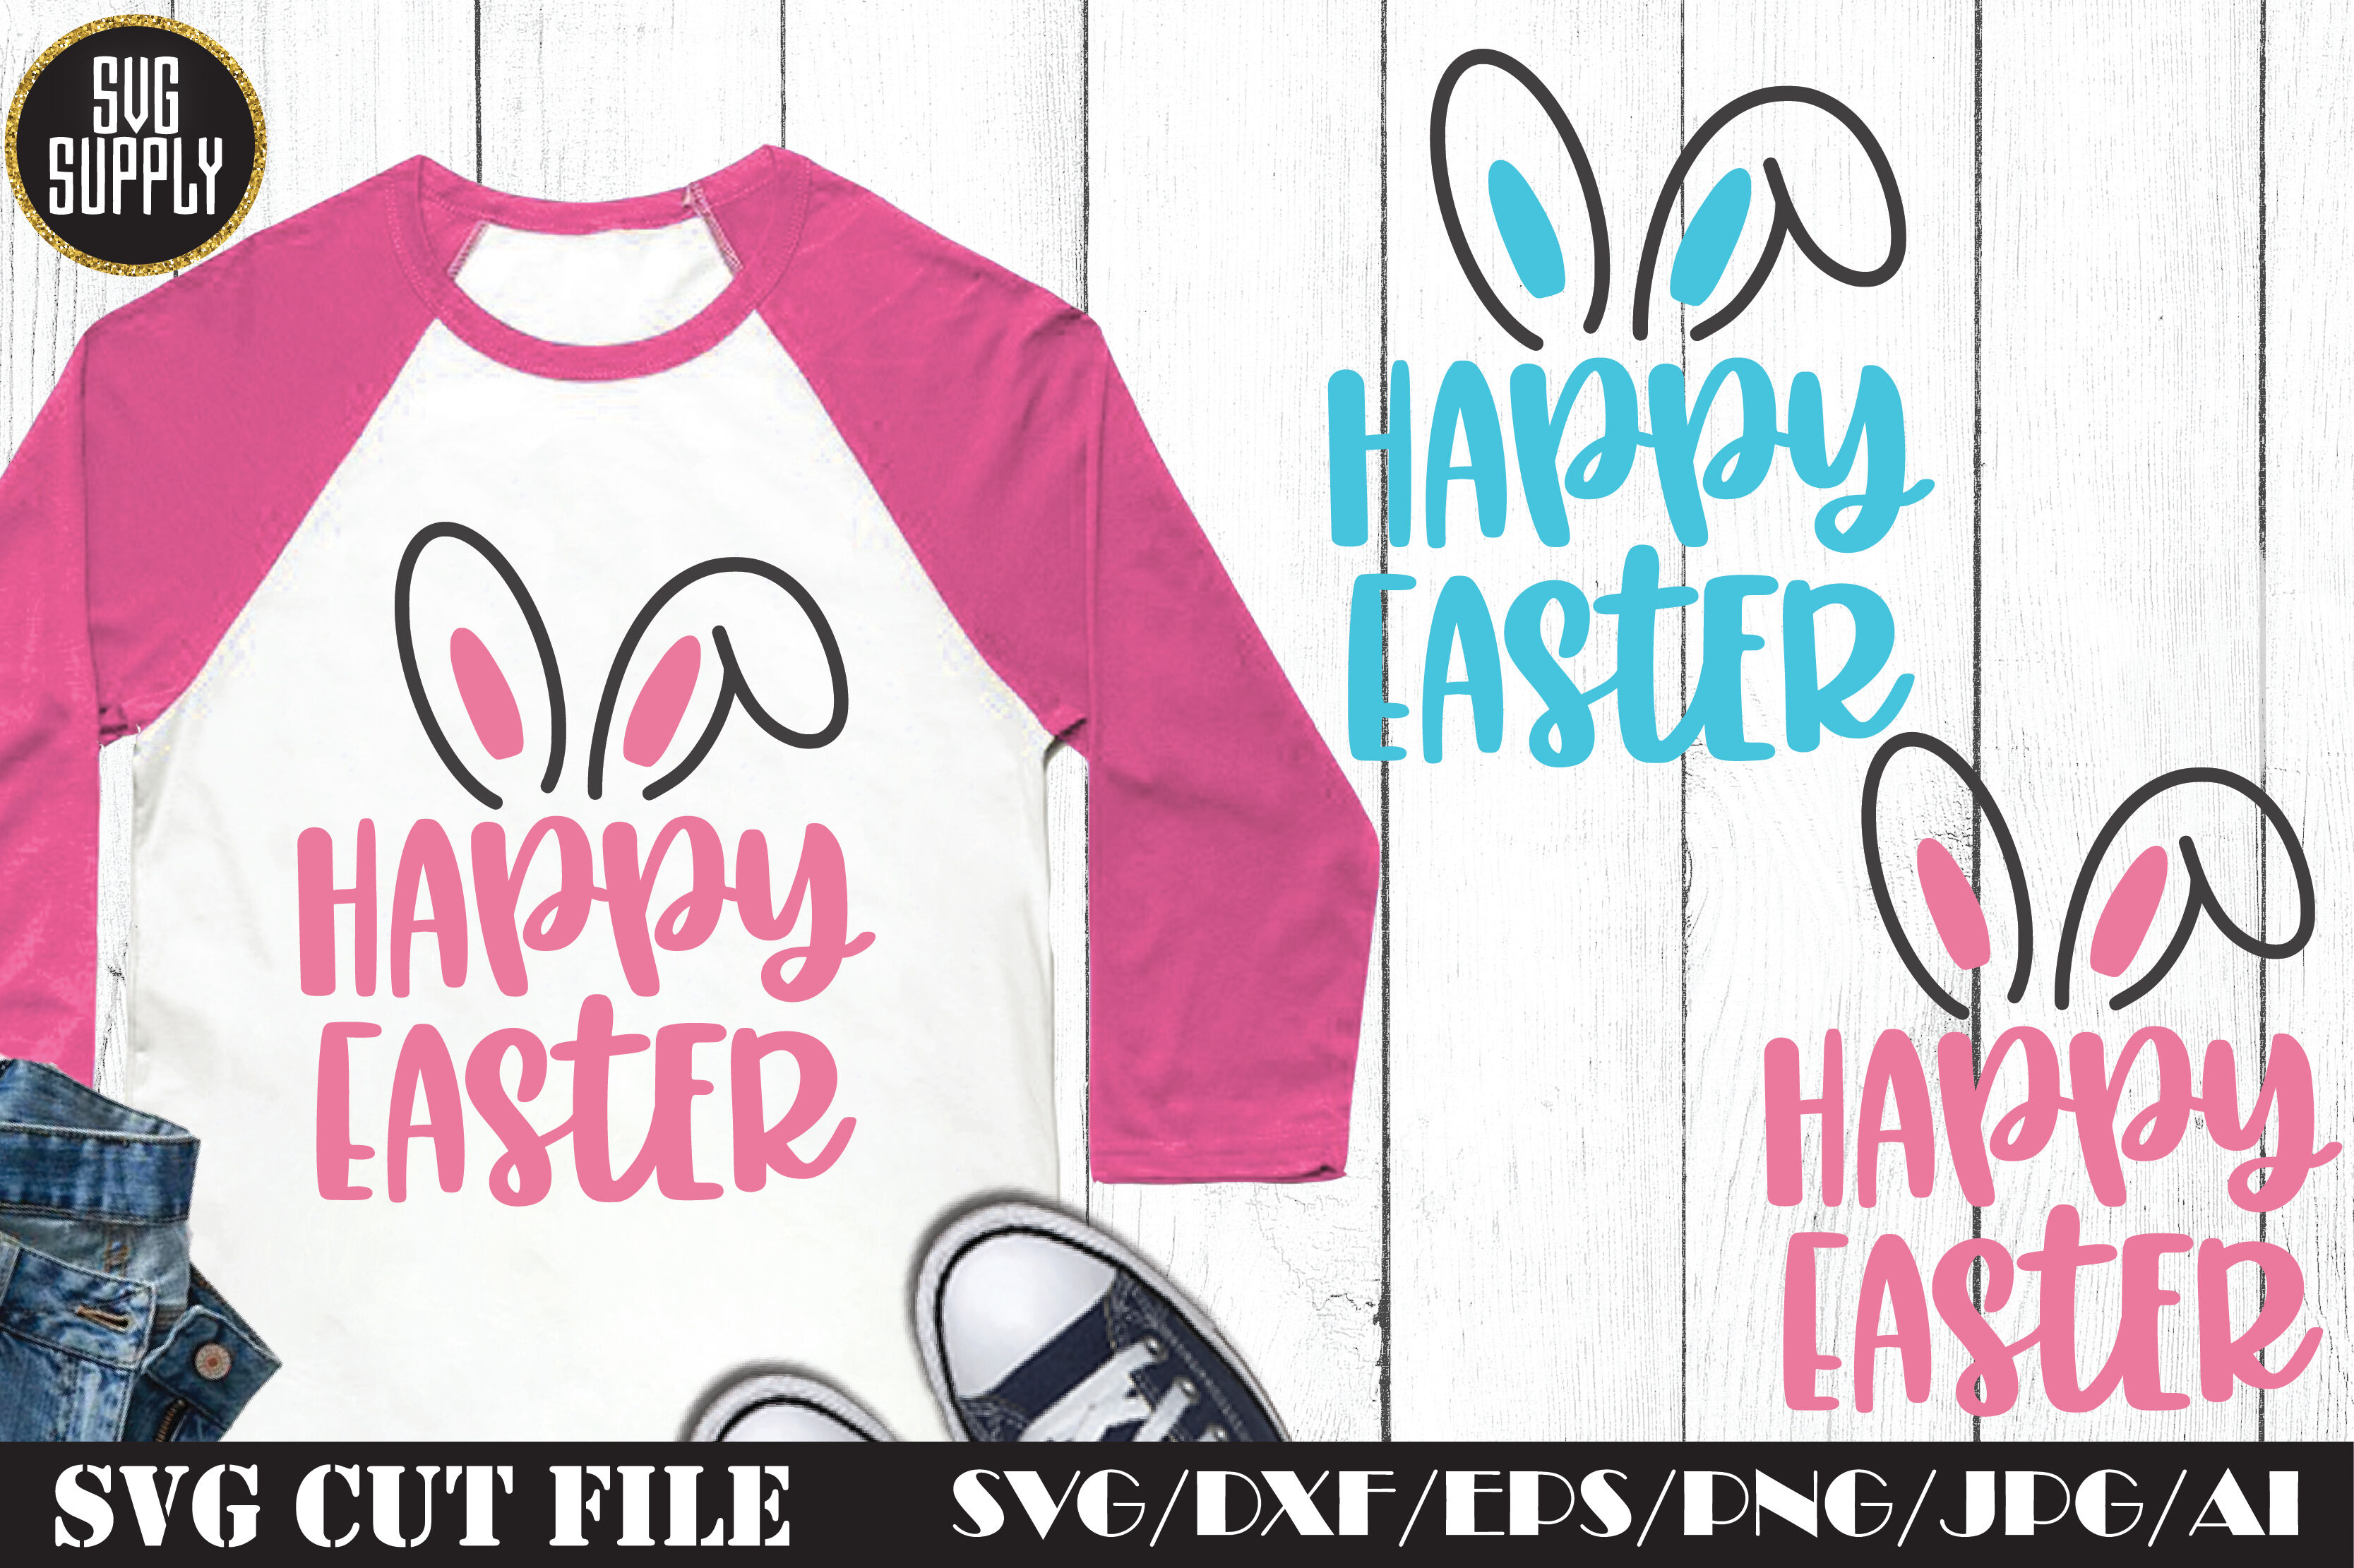 Happy Easter Svg Cut File By Svgsupply Thehungryjpeg Com